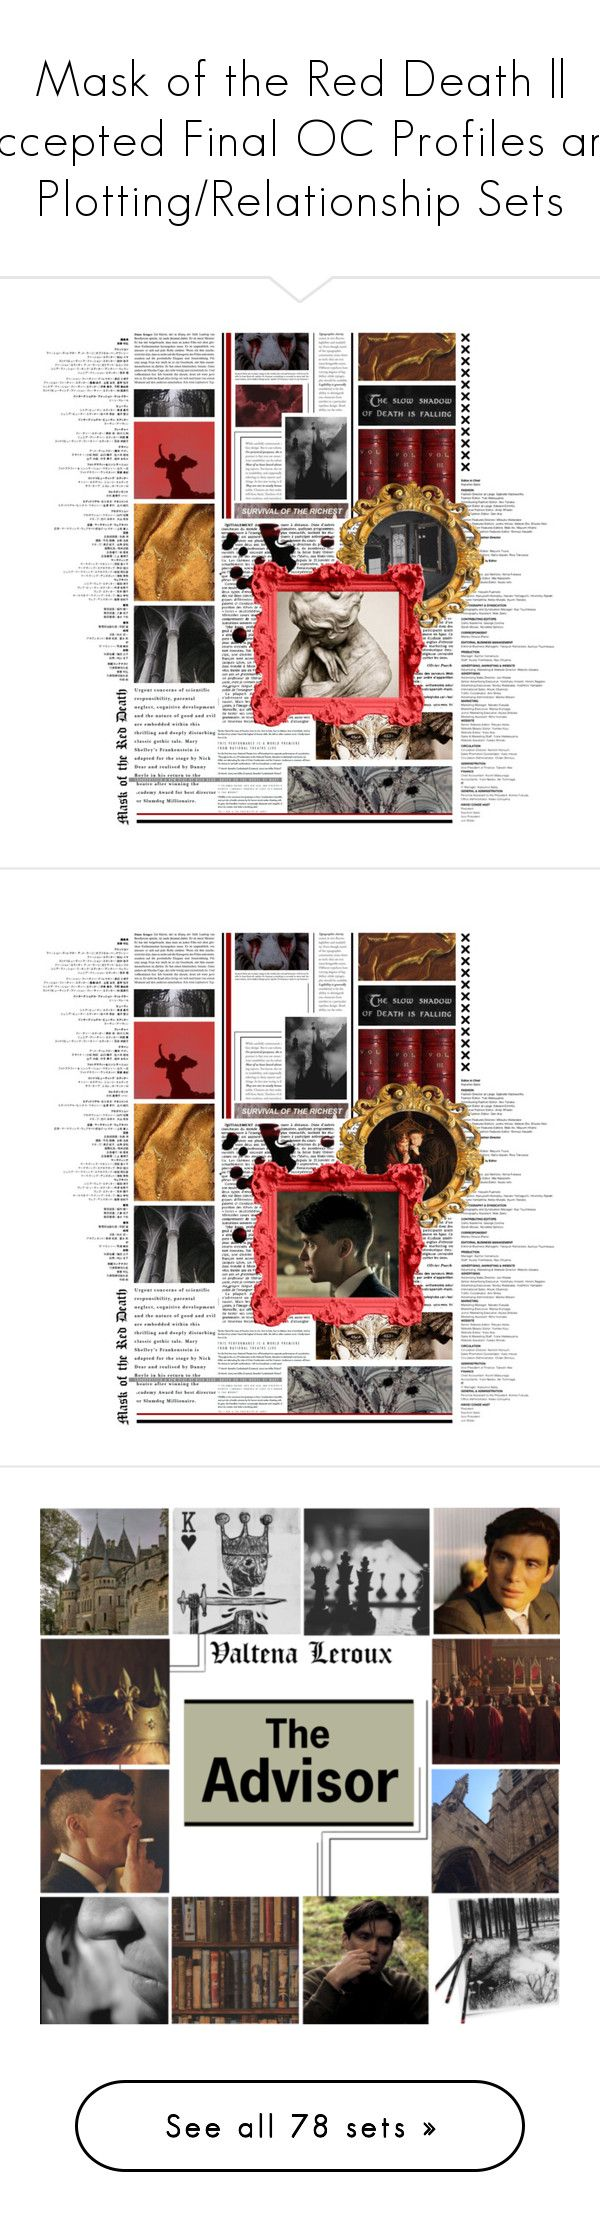 best ideas about plot of macbeth macbeth plot mask of the red death accepted final oc profiles and plotting relationship sets by 10084 liked on polyvore featuring art macbeth barker men s fashion